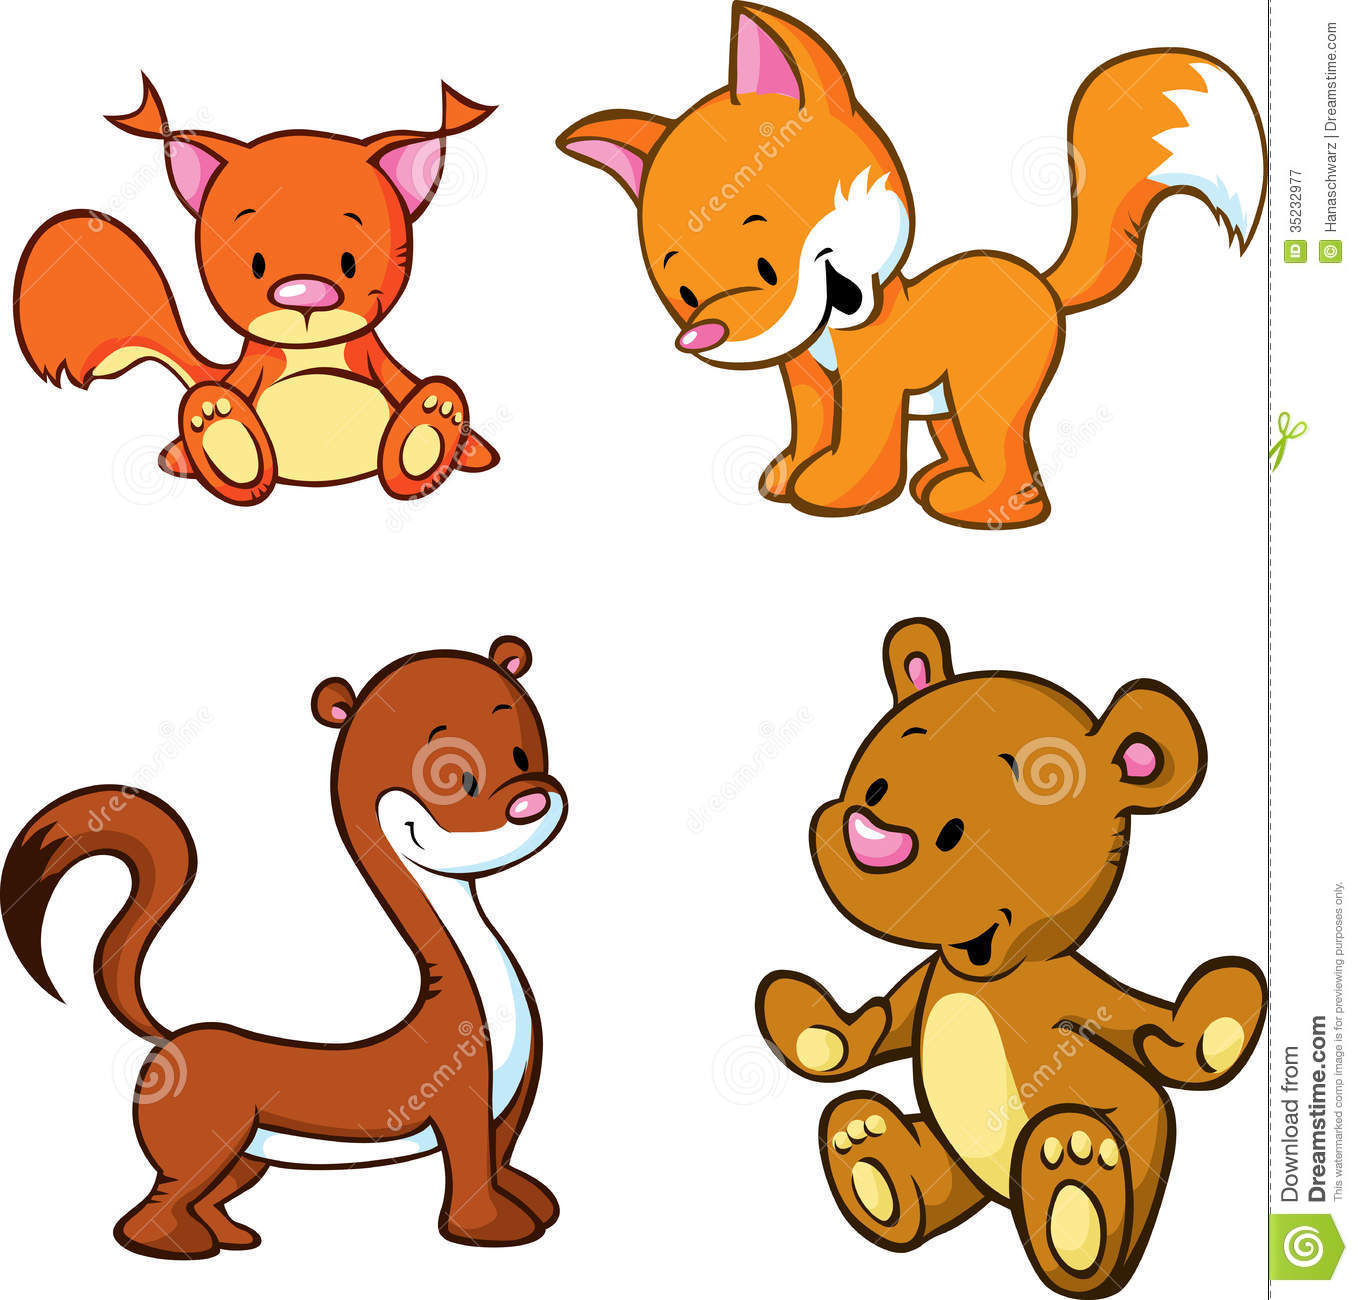 Cute cartoon animals stock vector image of adorable 35232977 cute cartoon animals voltagebd Gallery